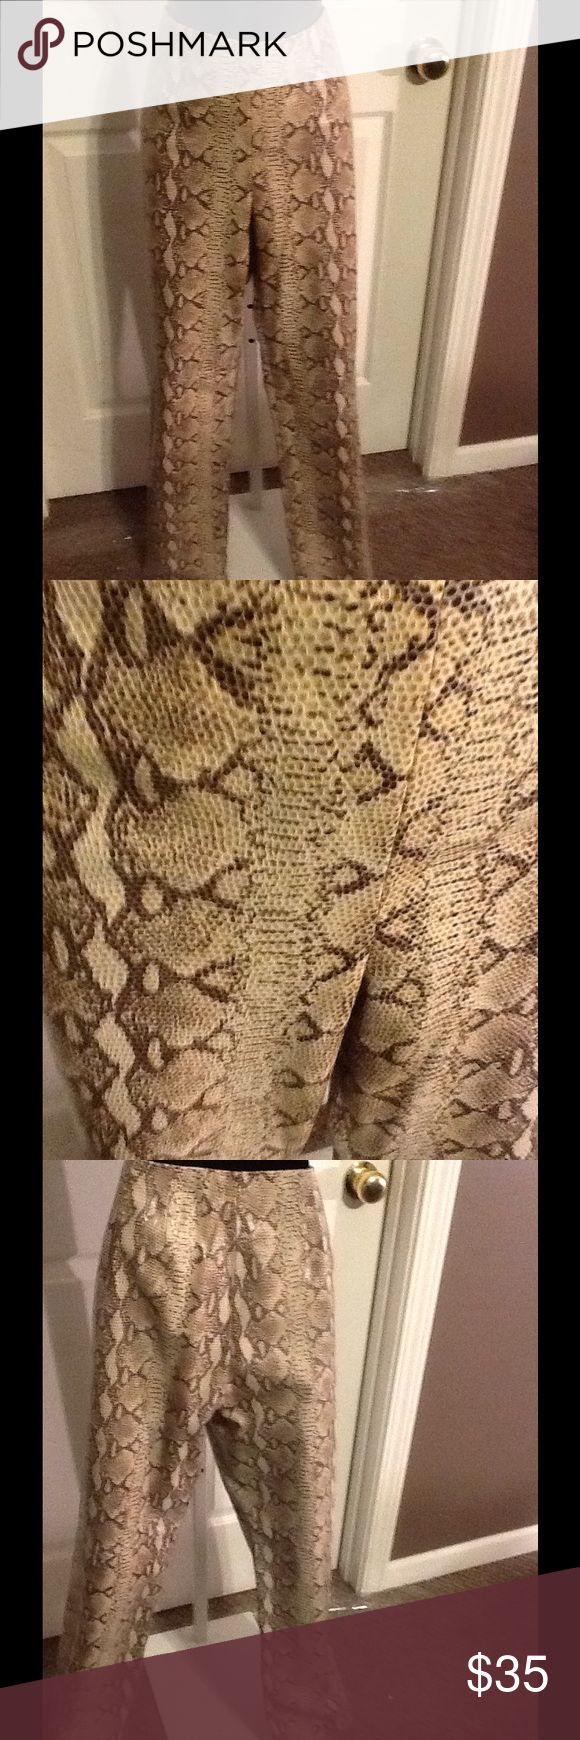 Dana Buchman Snake print pants. These Dana Buchman Python print pants are 100% Lamb skin and bad to the bone you will be hard pressed to find these exquisite pants for such a great price and great condition. Dana Buchman Pants